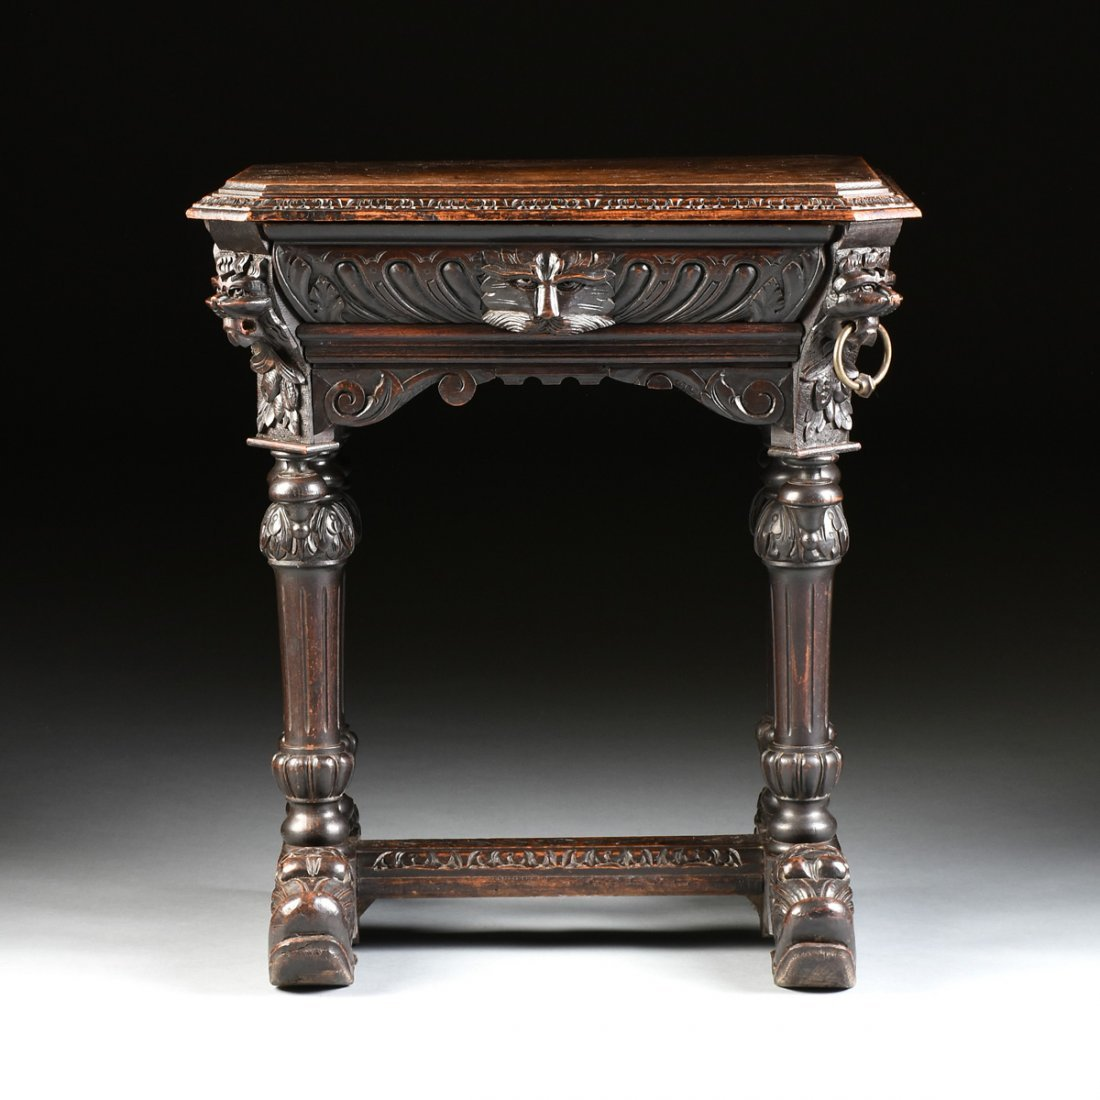 A RENAISSANCE REVIVAL CARVED WOOD SIDE TABLE, POSSIBLY - 2